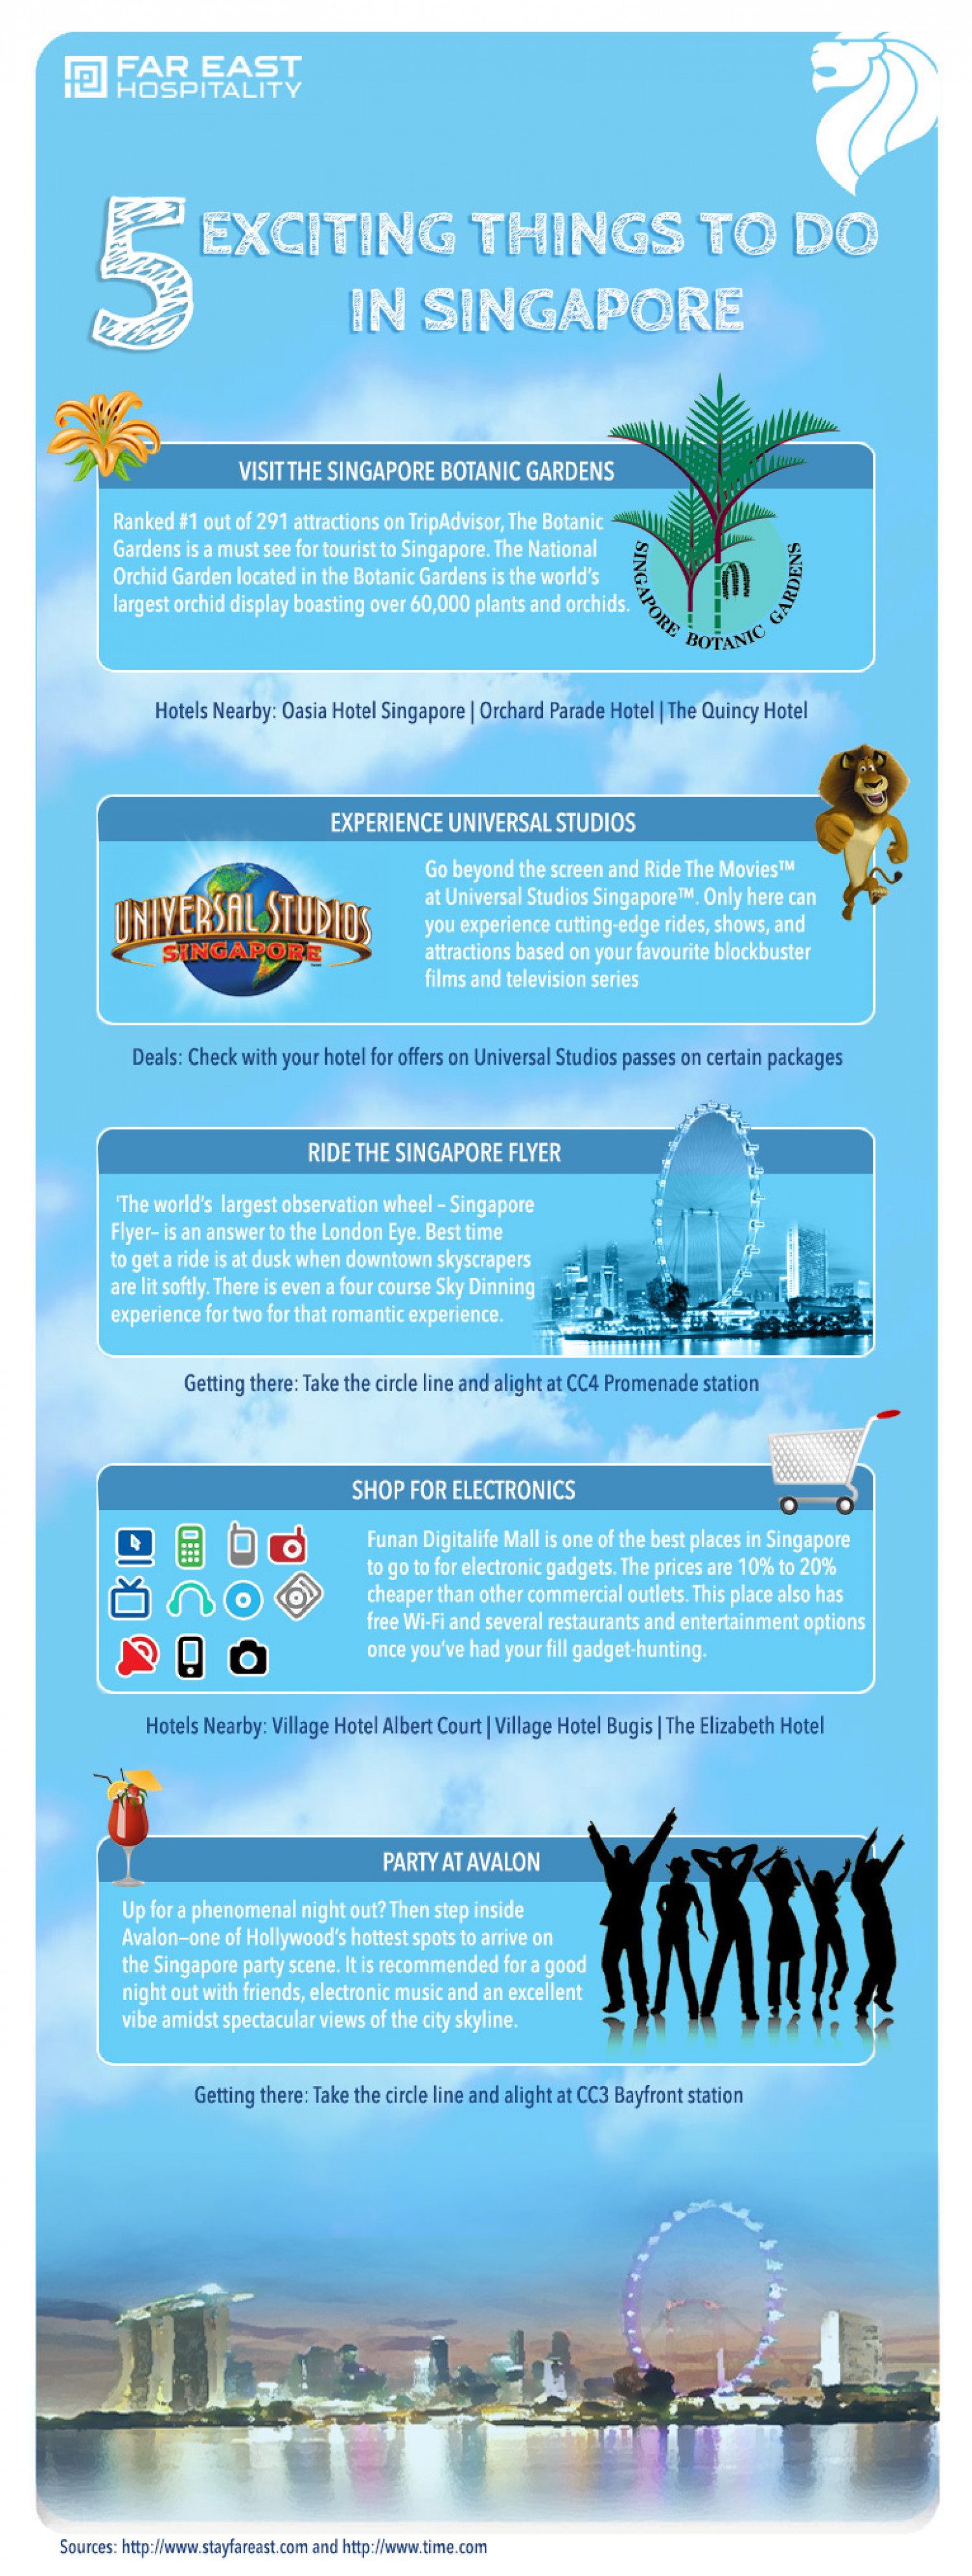 5 Exciting Things To Do In Singapore Infographic